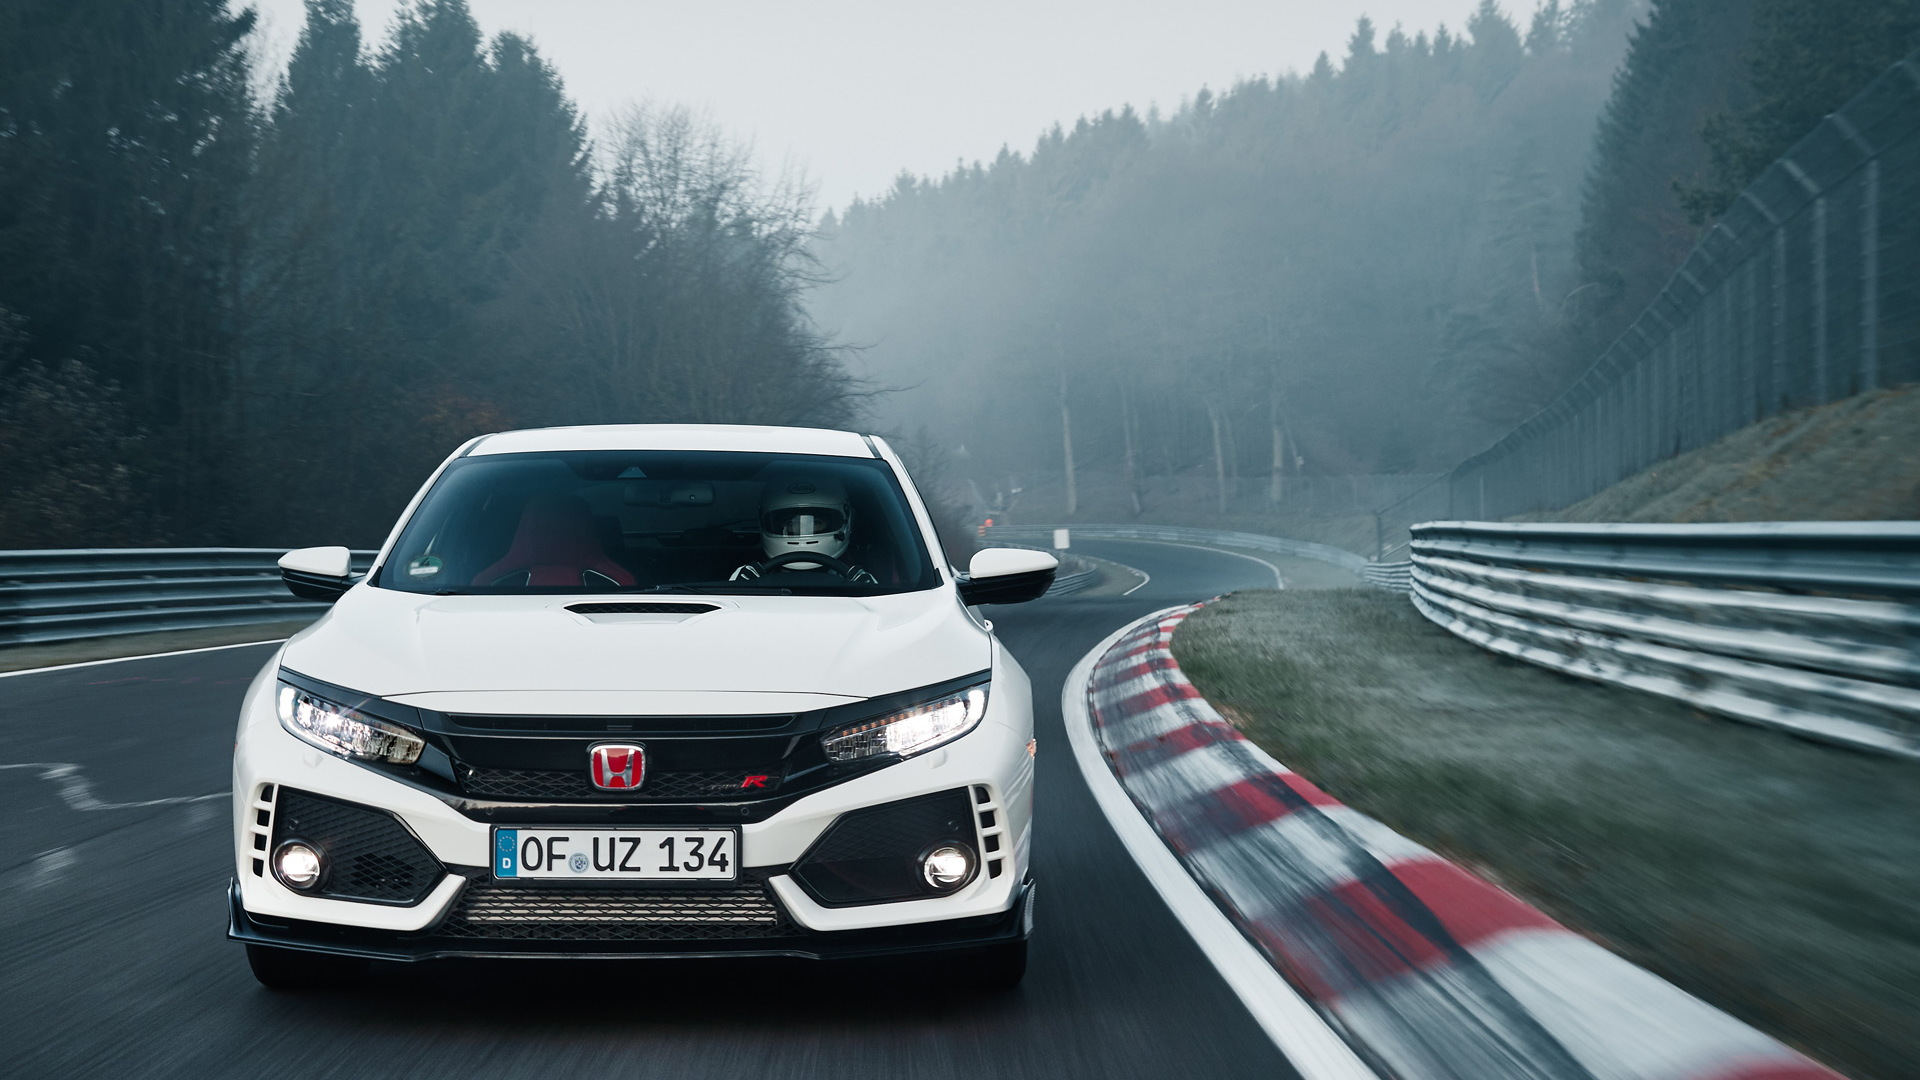 2017 Honda Civic Type R during April 3, 2017 Nürburgring record attempt